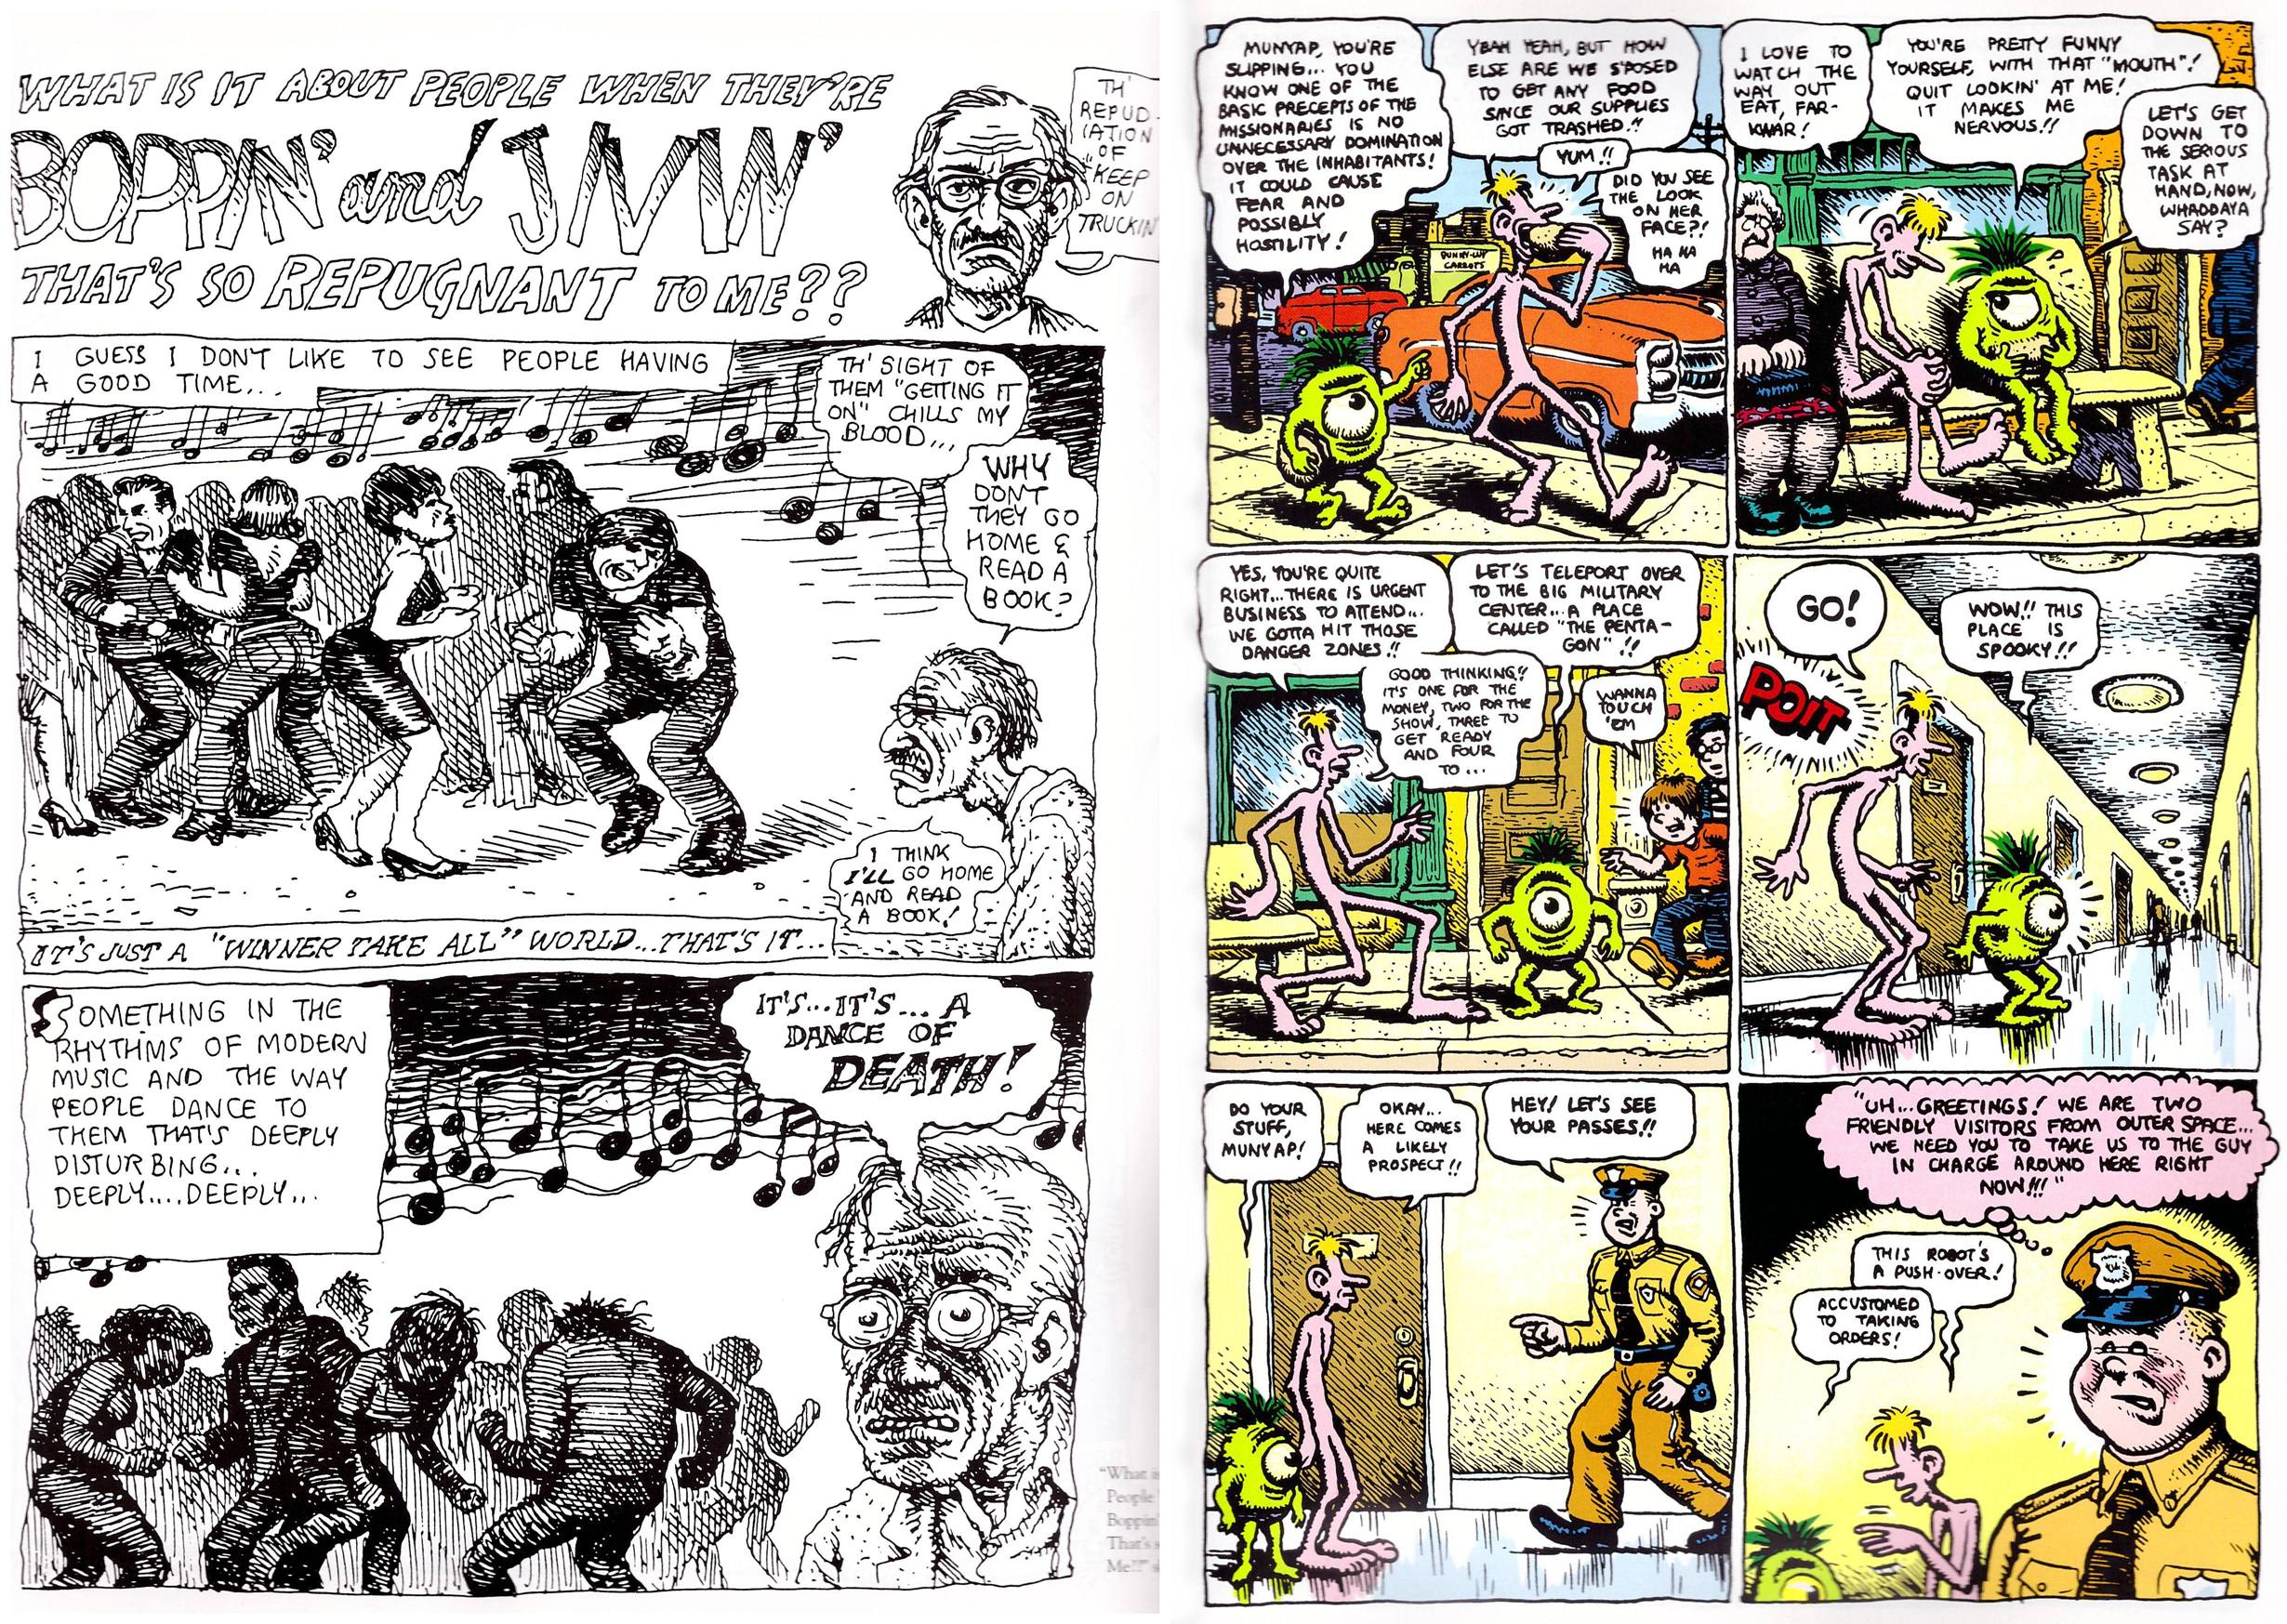 The R. Crumb Coffee Table Art Book review